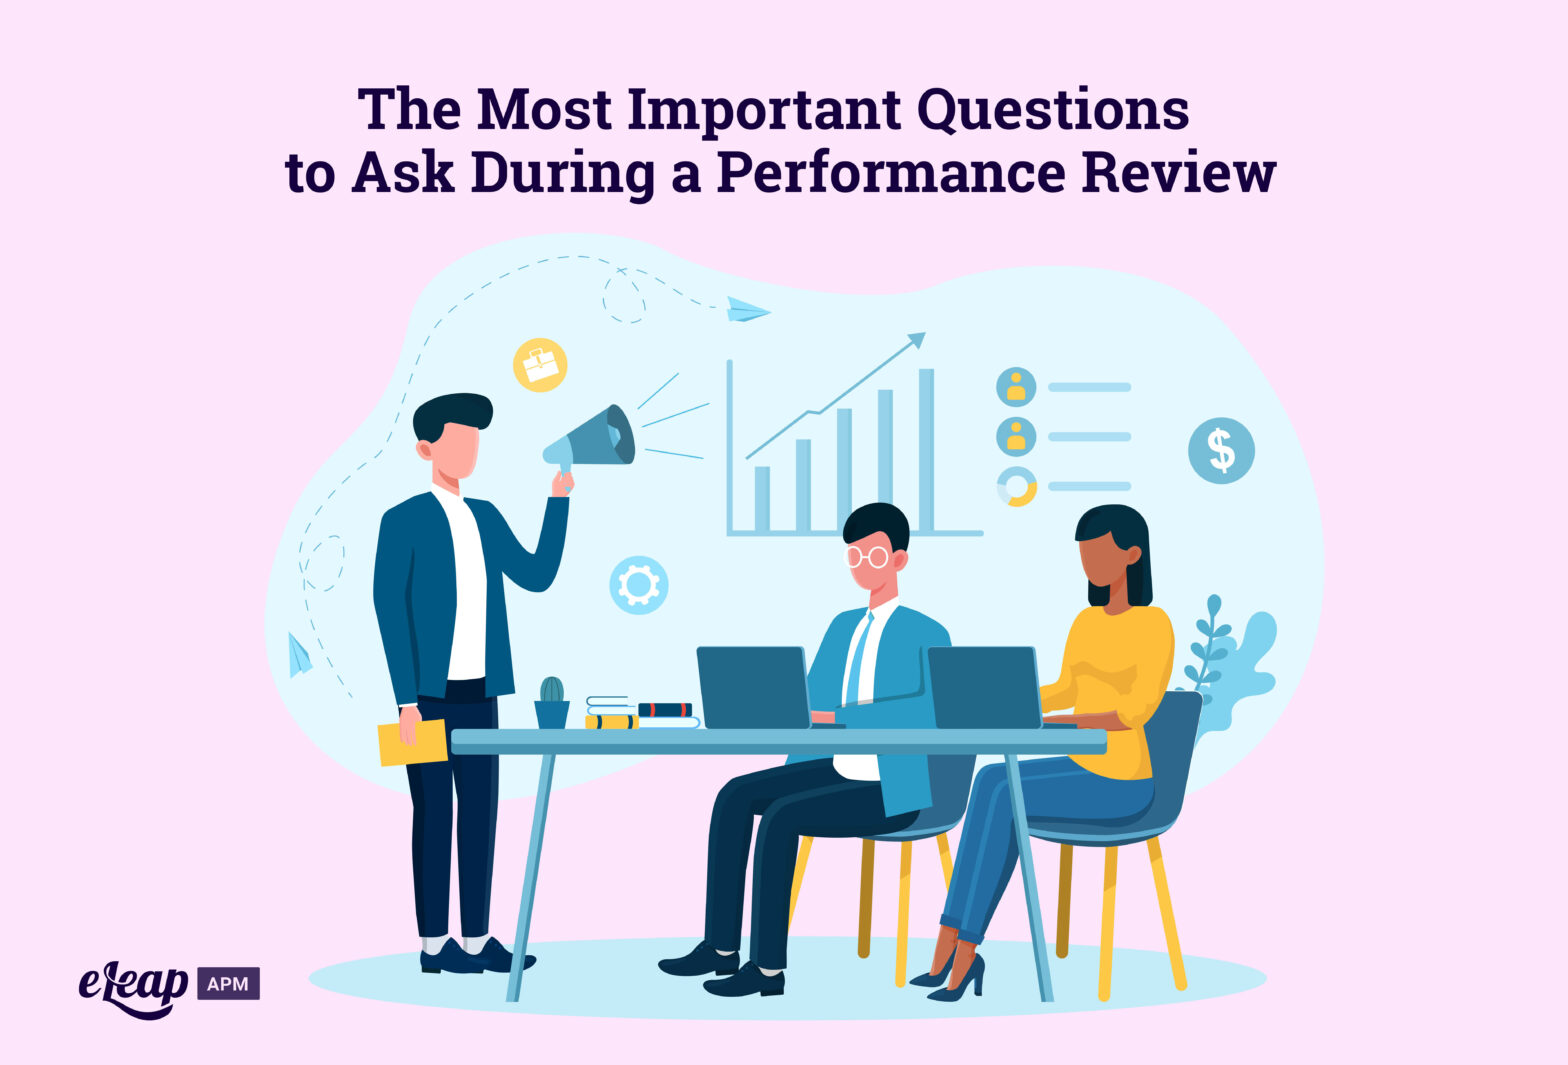 The Most Important Questions to Ask During a Performance Review